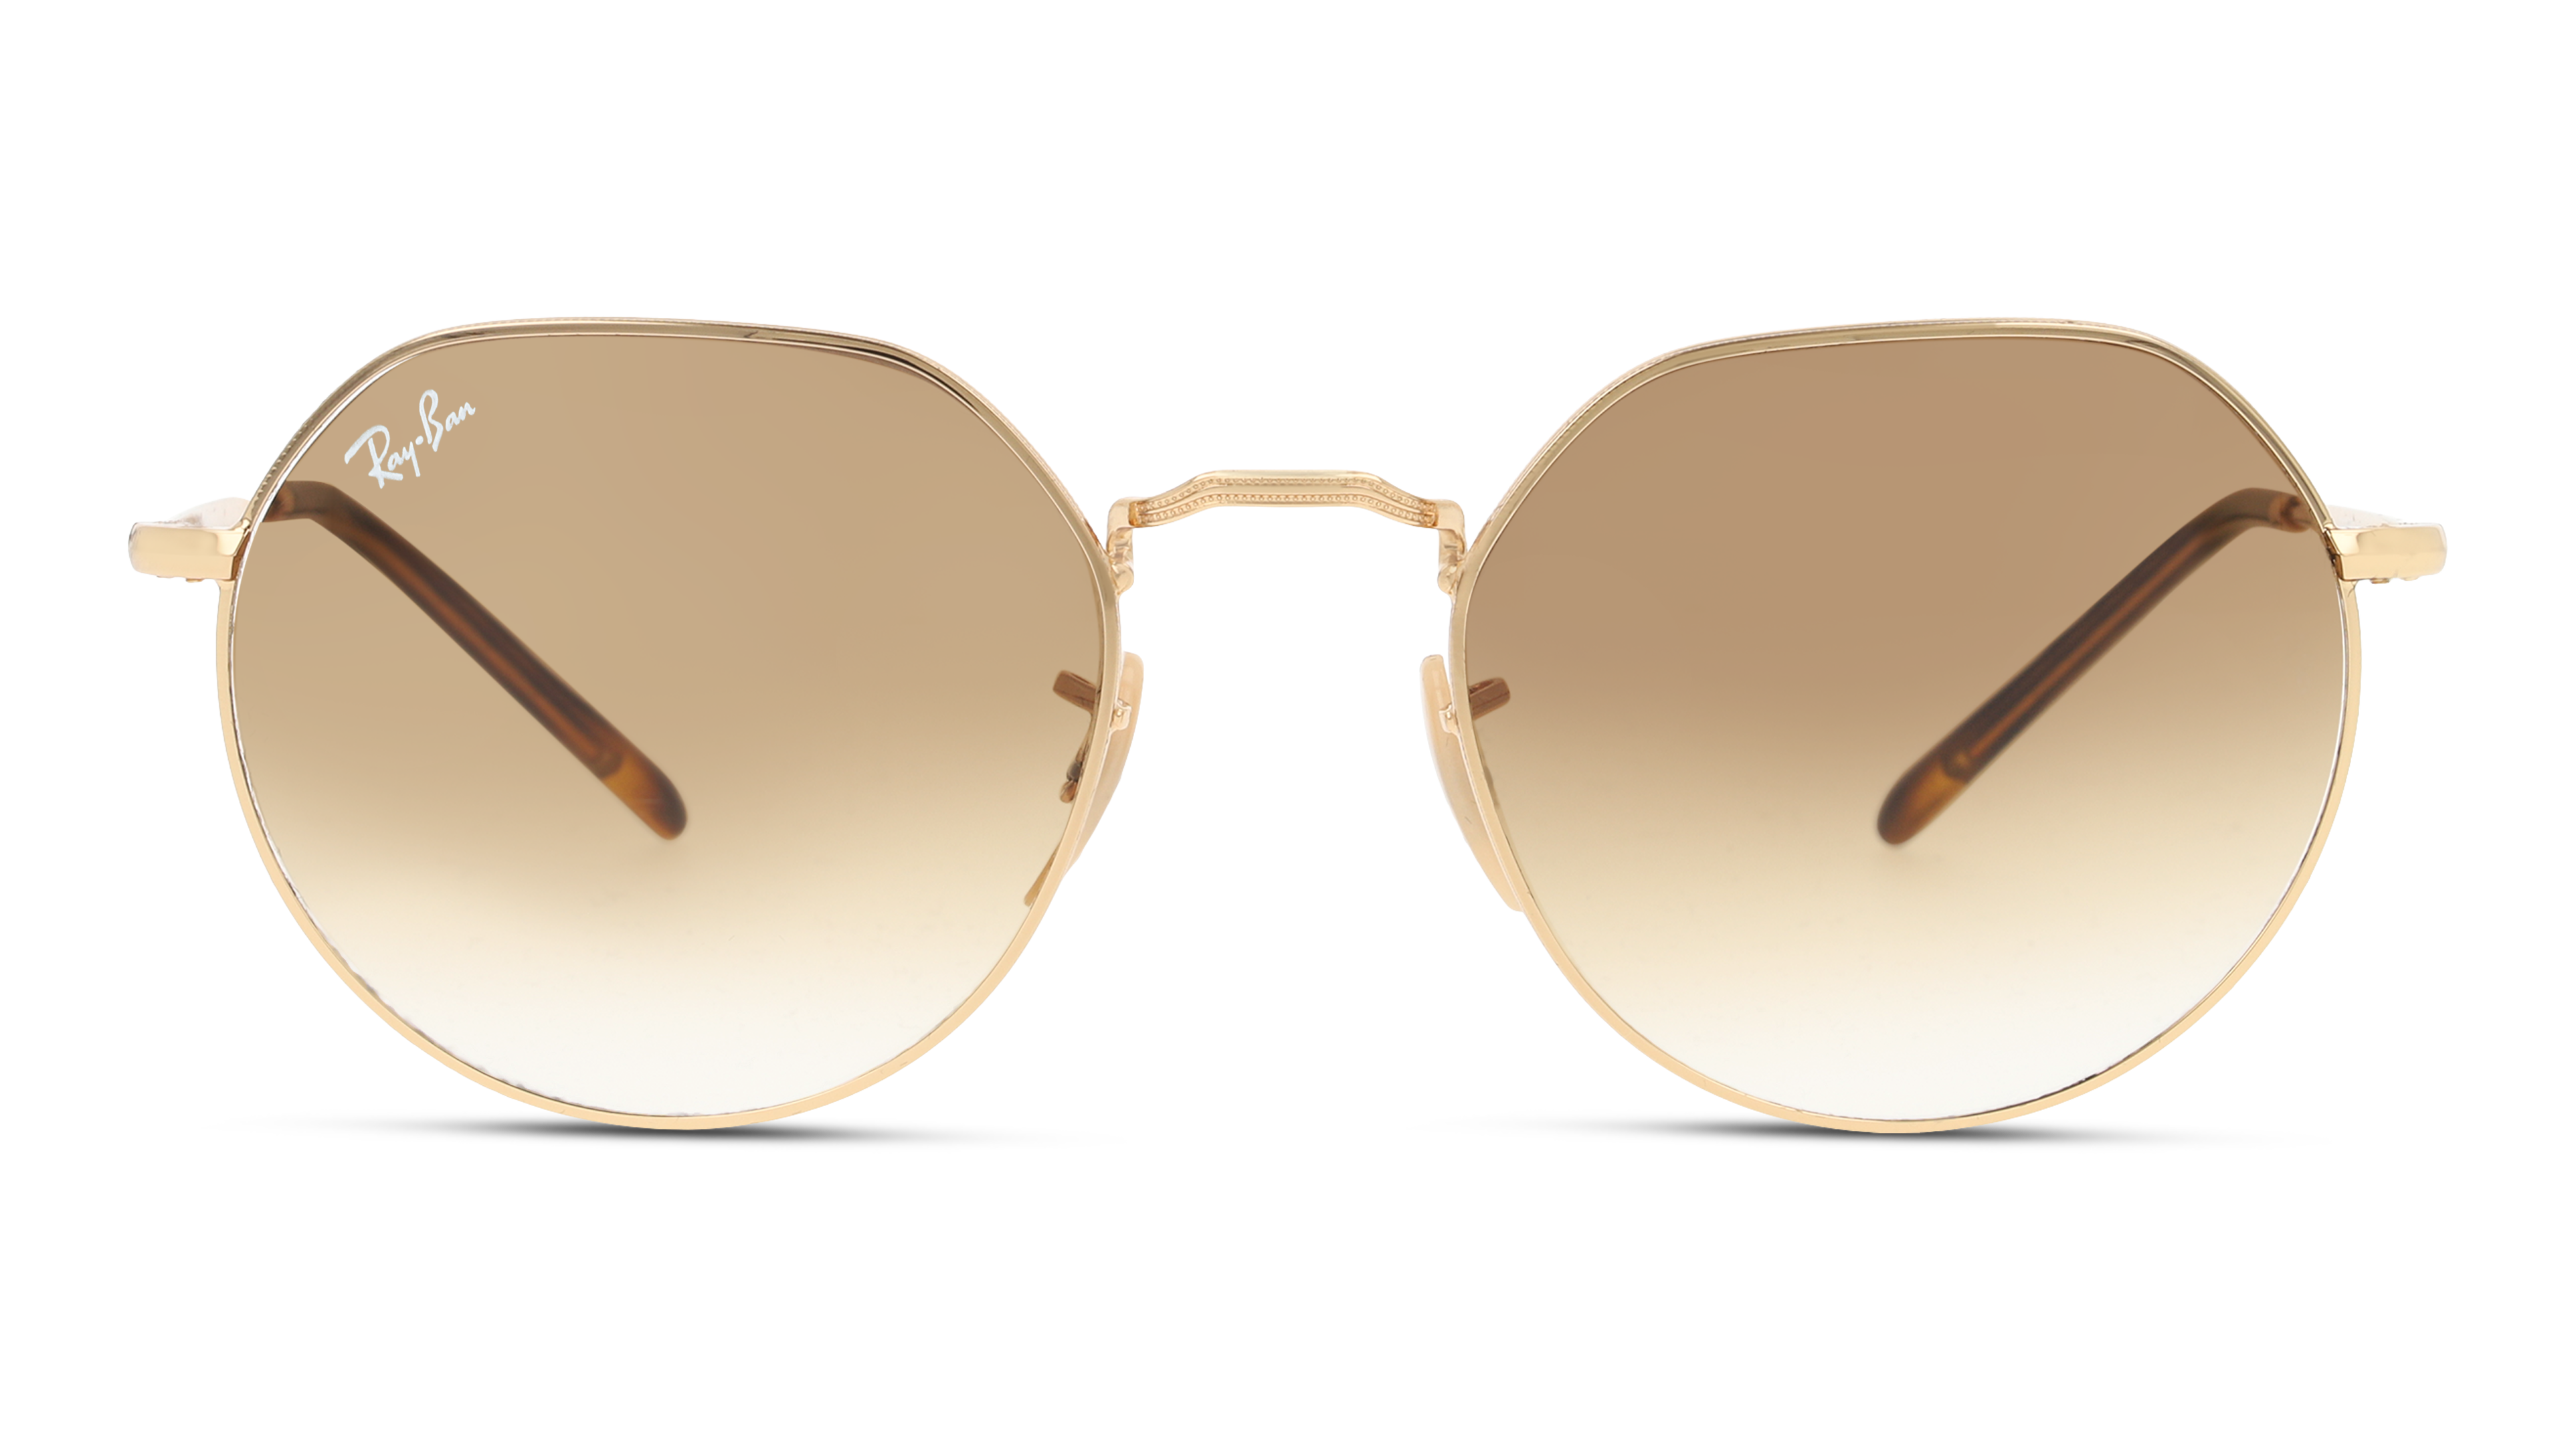 Front Ray-Ban Ray-Ban 0RB3565 001/51 53/20 Goud/Bruin